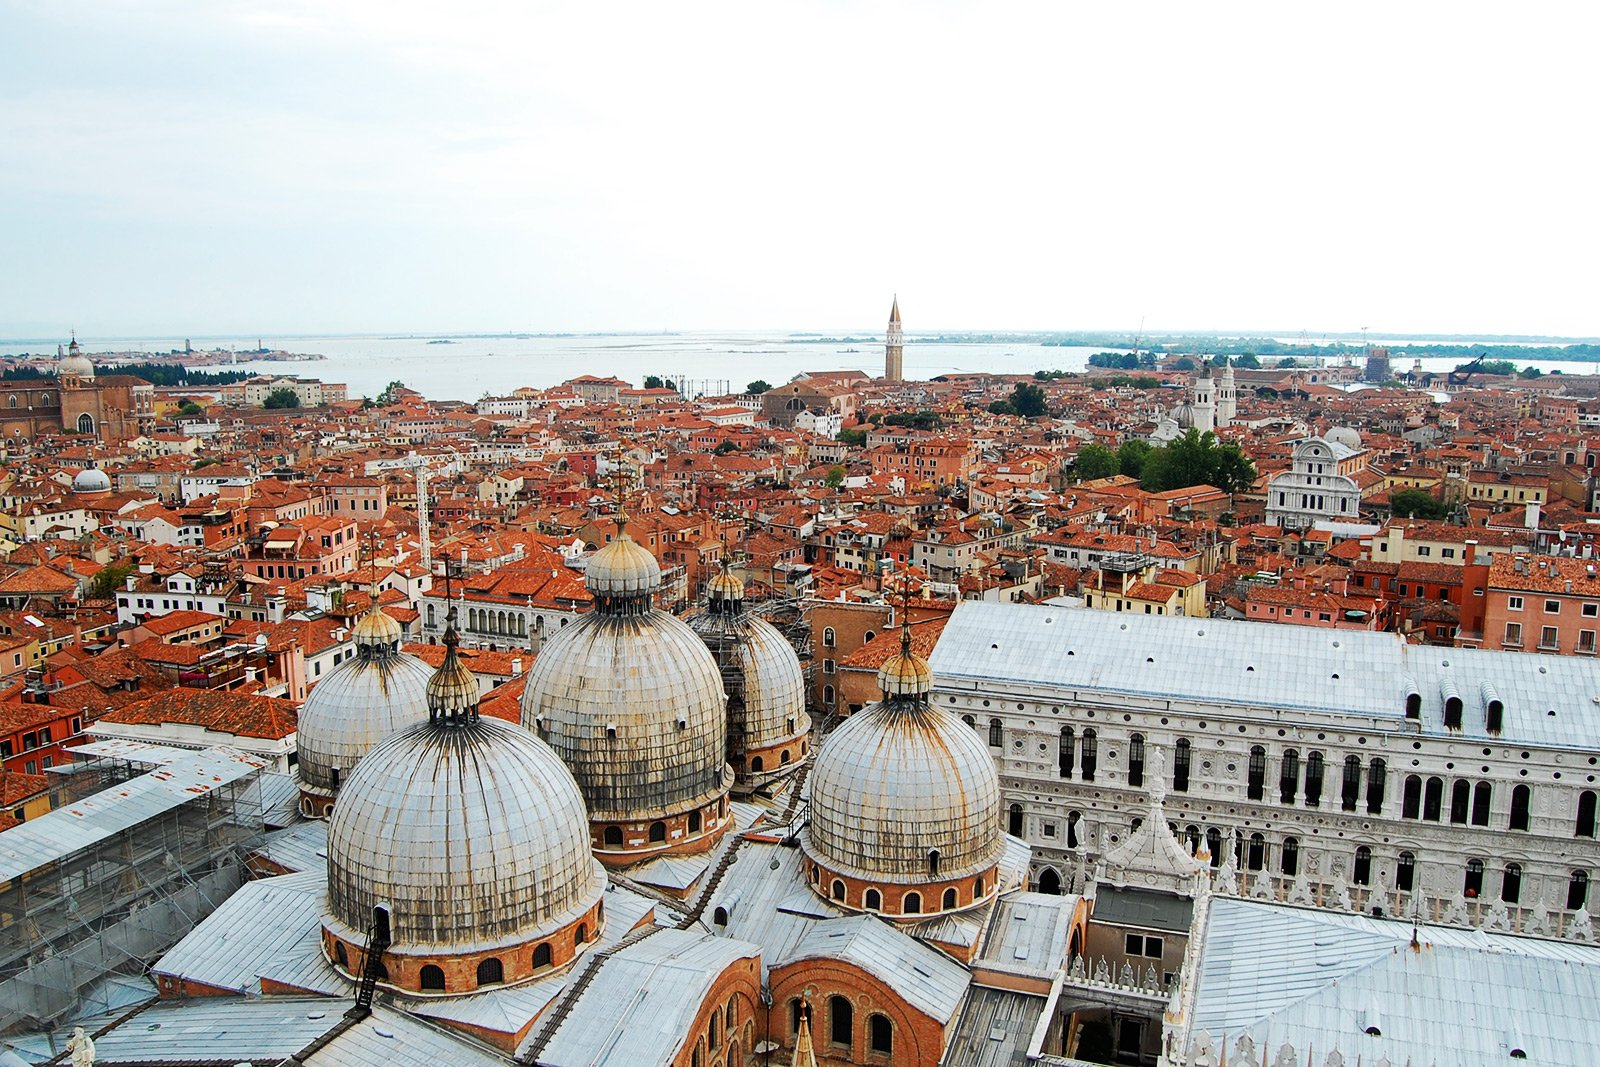 How to climb the Campanile of the St. Mark's Basilica in Venice